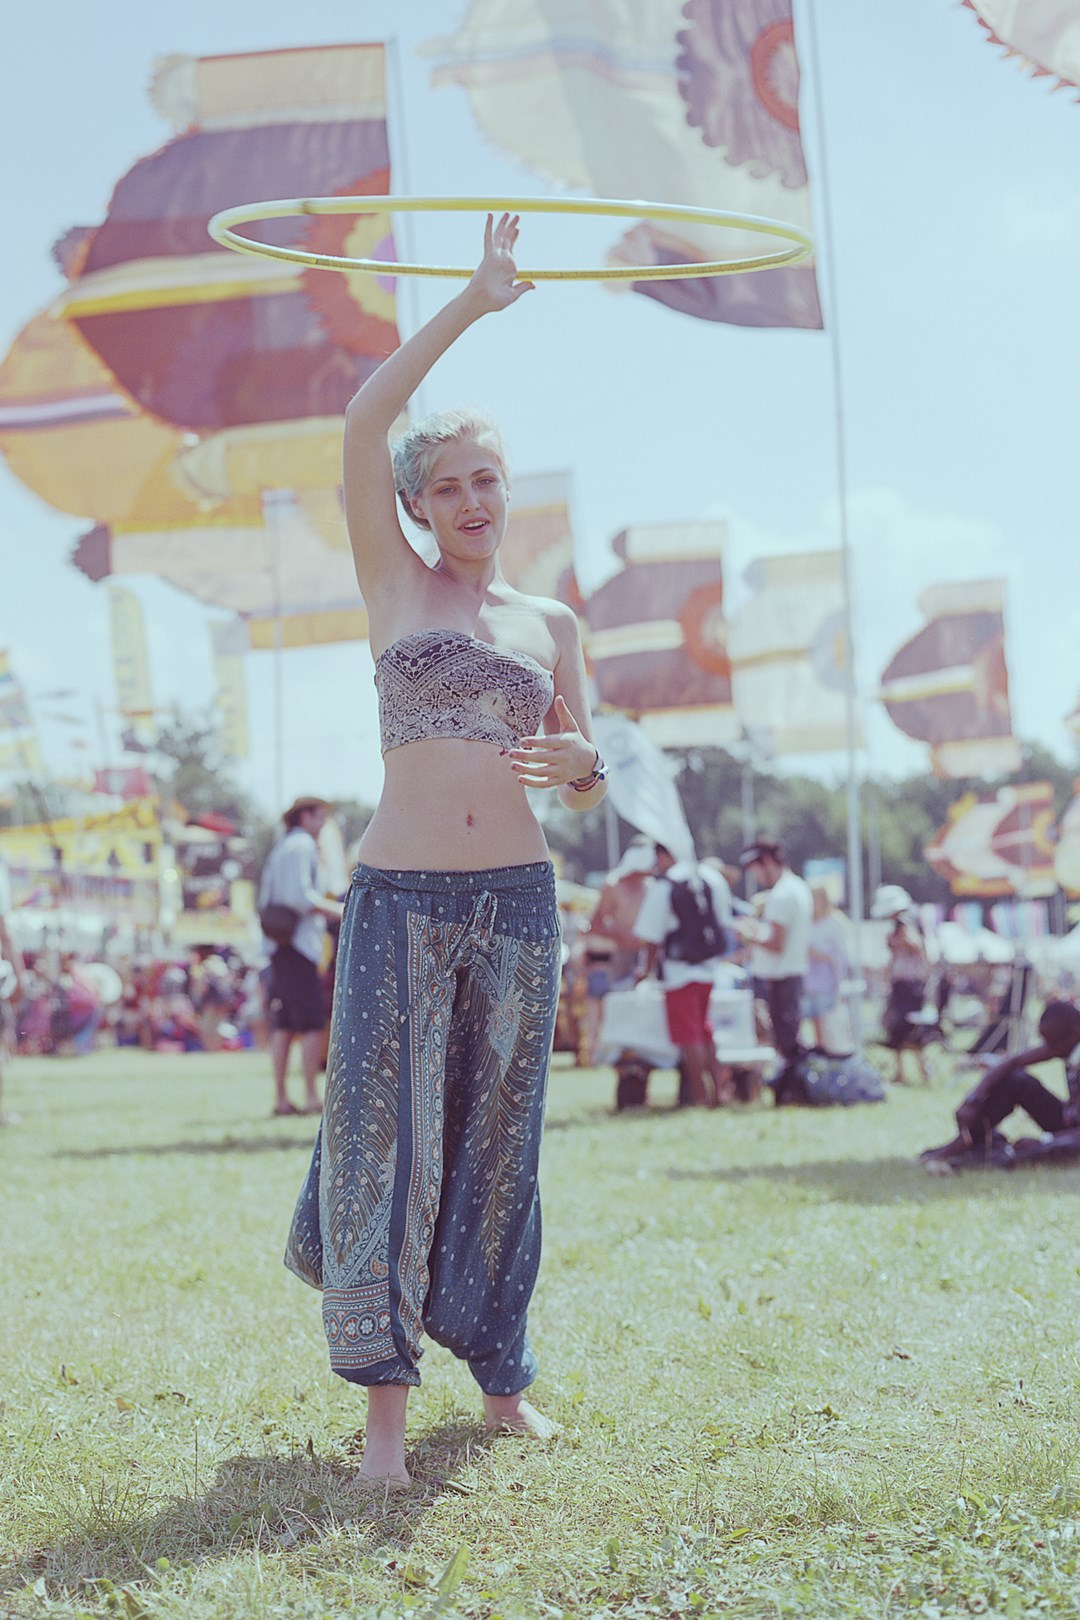 PHOTO TAKEN AT LAST YEARS WOMAD BY  DAVE BULLIVANT